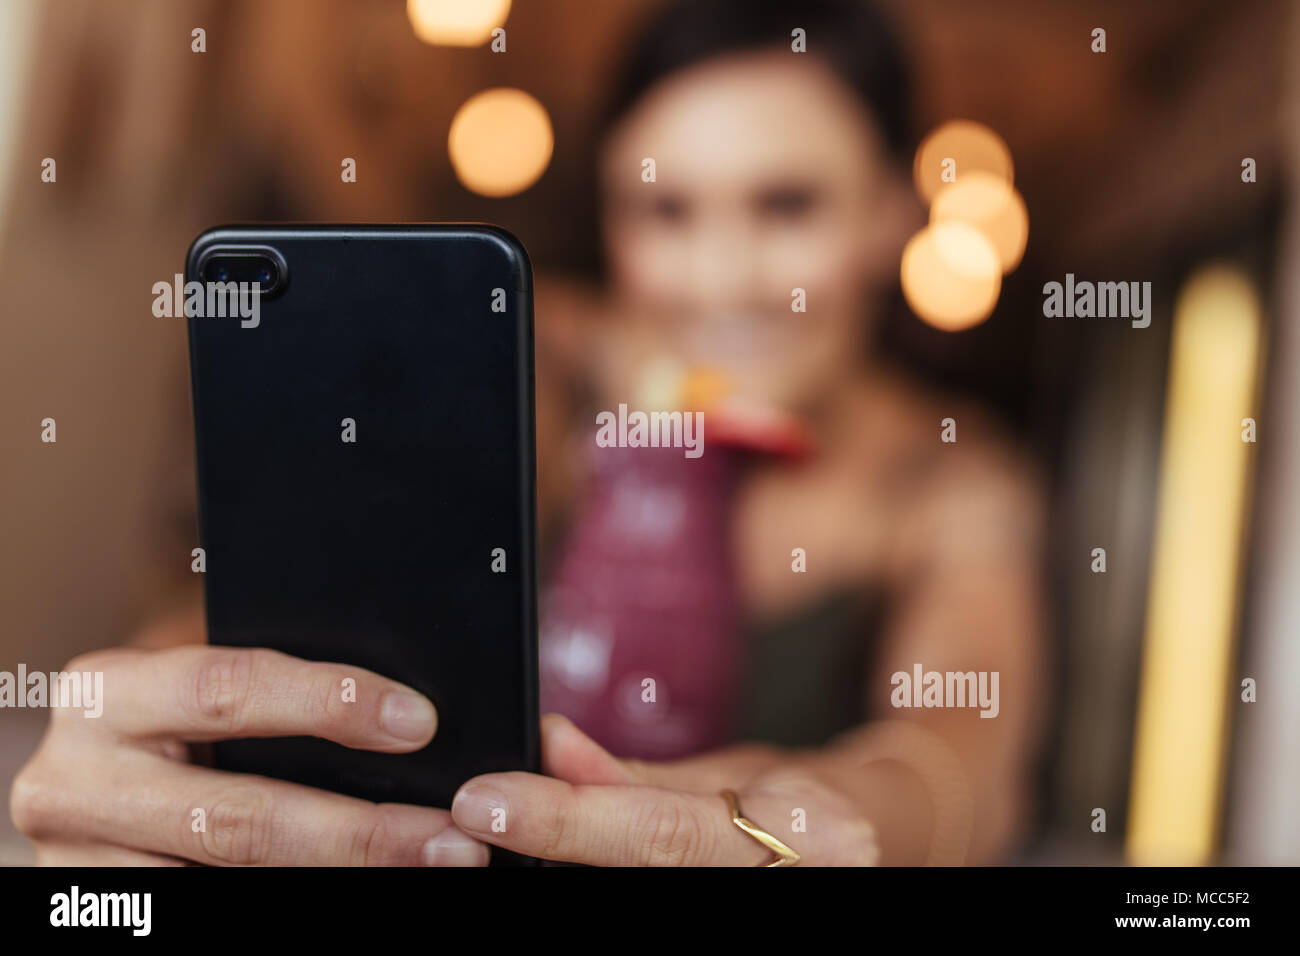 Blurred image of a woman taking a selfie with a smoothie placed on the table using a mobile phone. Food blogger shooting photos for her blog at home. - Stock Image